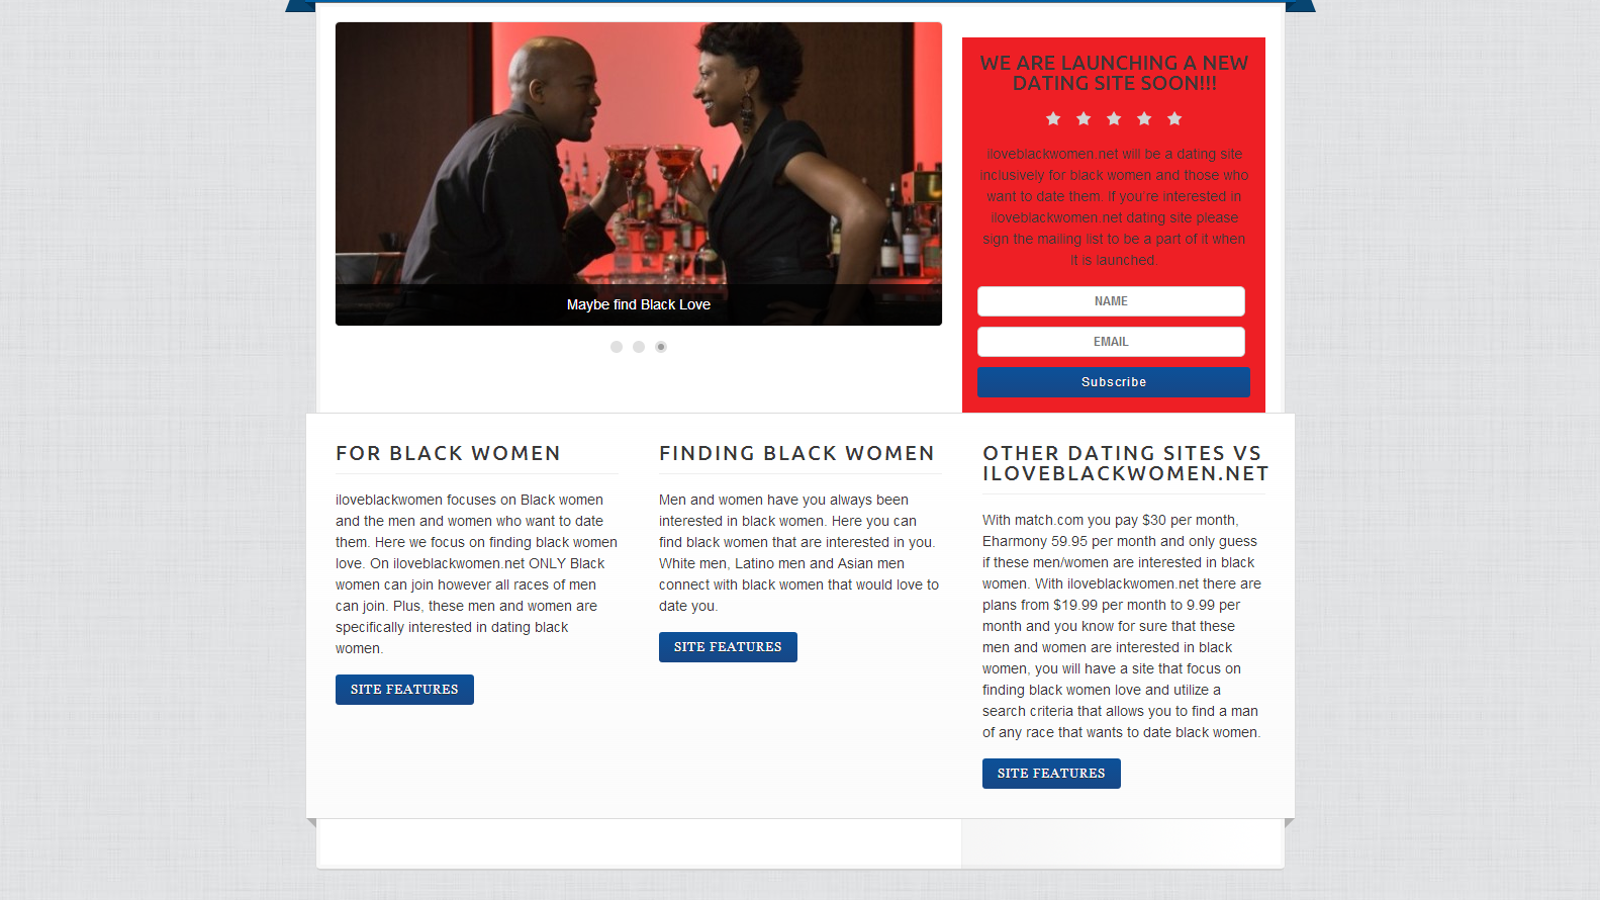 west lafayette black women dating site Free to join & browse - 1000's of black women in west lafayette, ohio - interracial dating, relationships & marriage with ladies & females online.